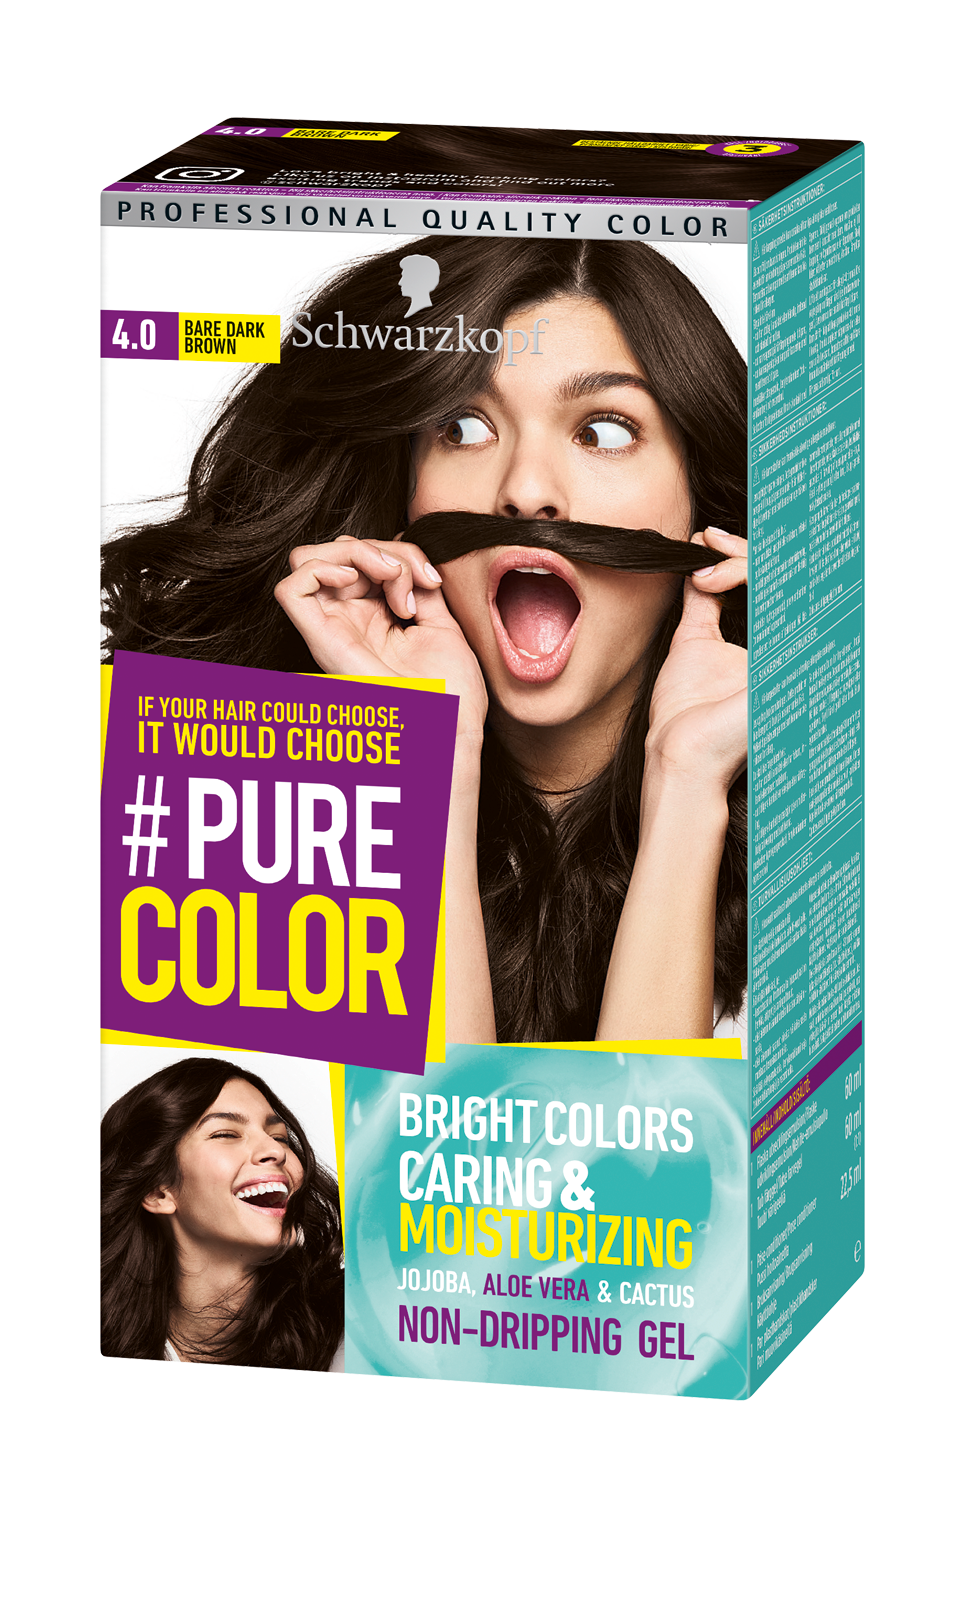 Pure-color-4-0-bare-dark-brown